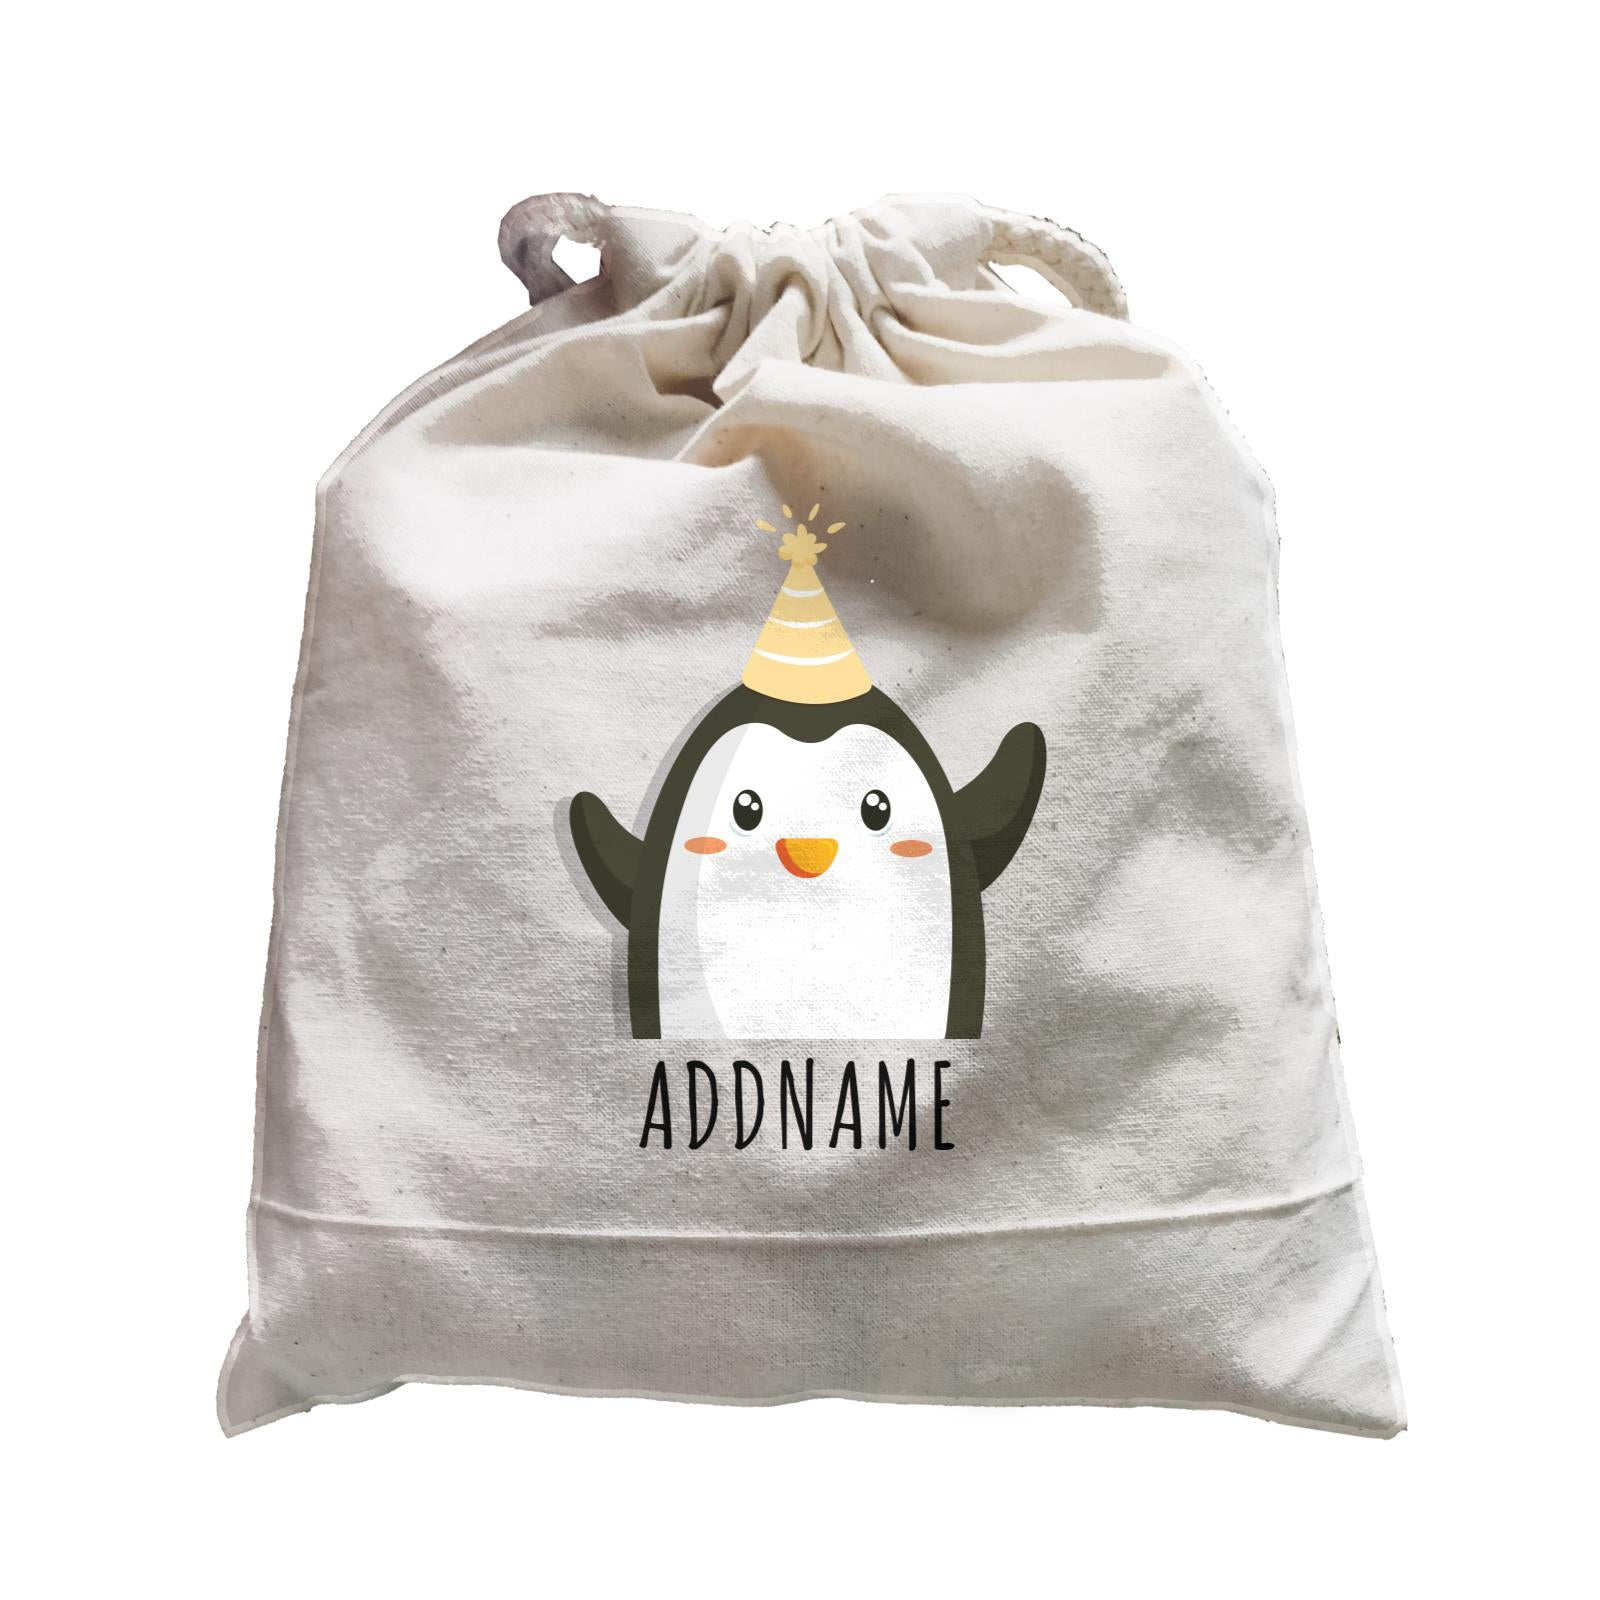 Birthday Cute Penguin Wearing Party Hat Addname Satchel